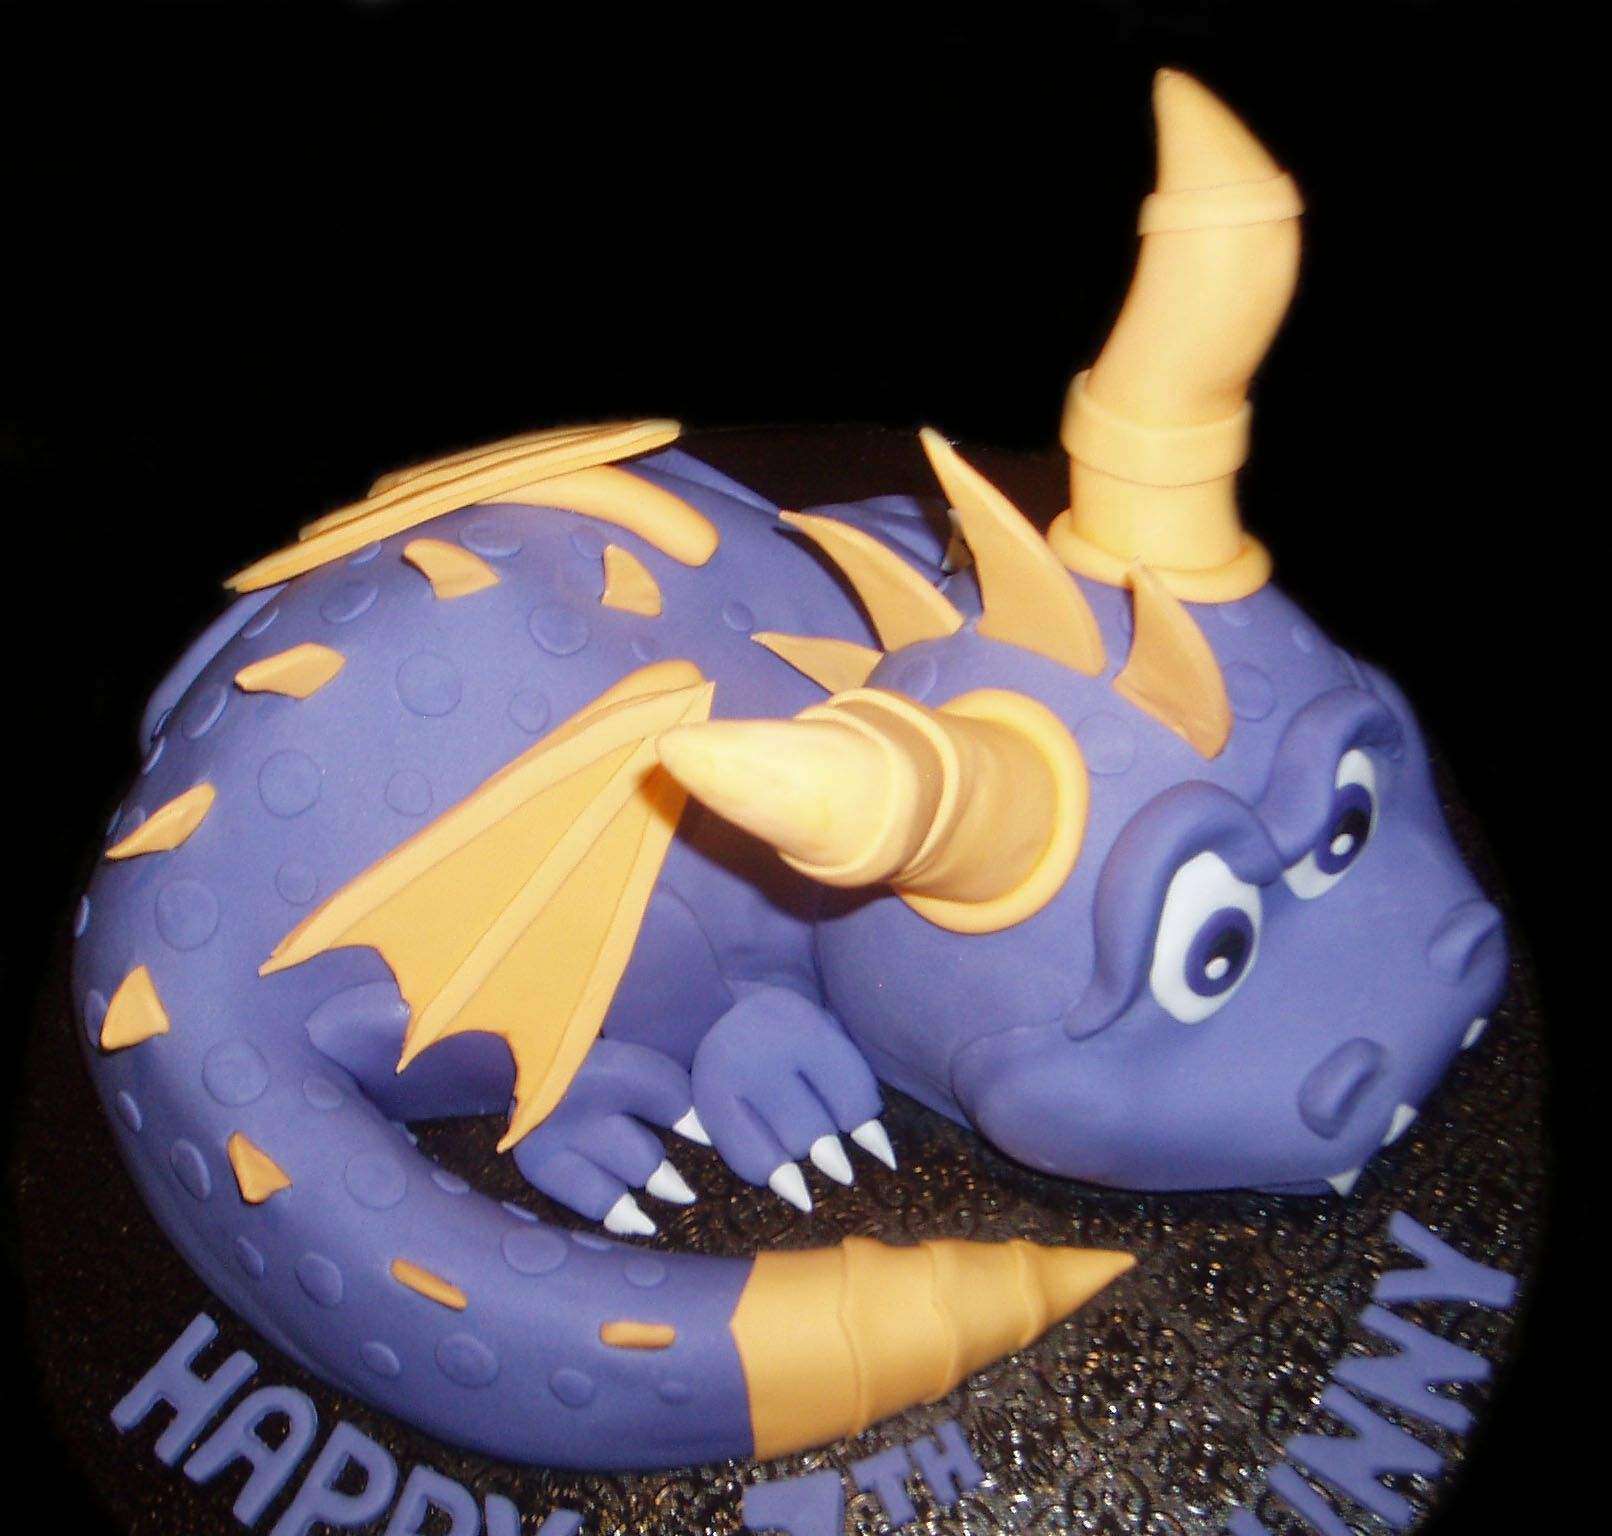 sculptured cake of spyro the dragon for kids birthday made by